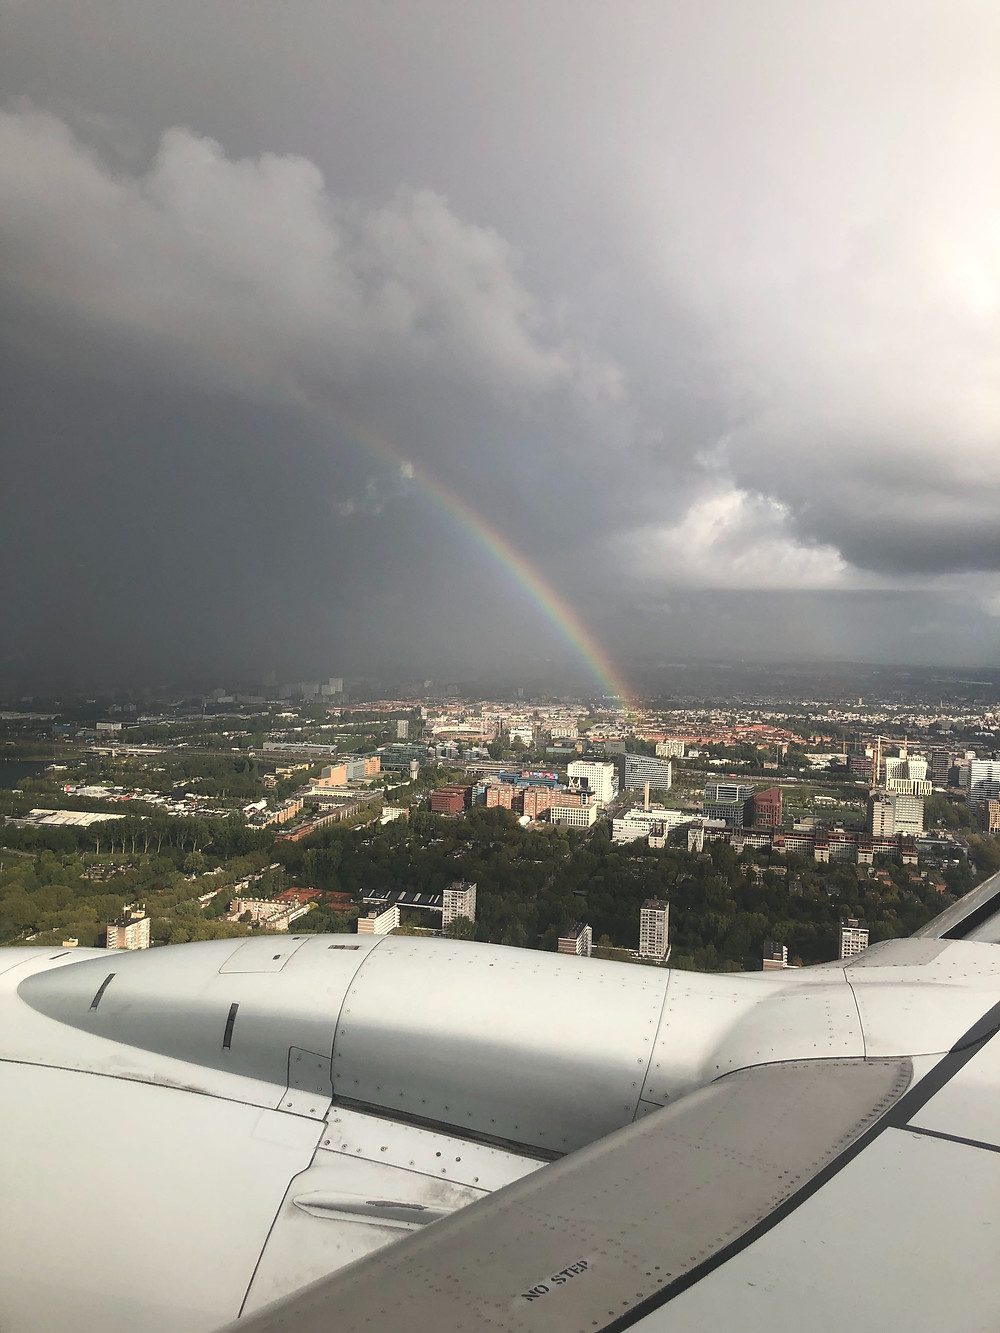 Plane landing in Denmark with a rainbow visible over the city.